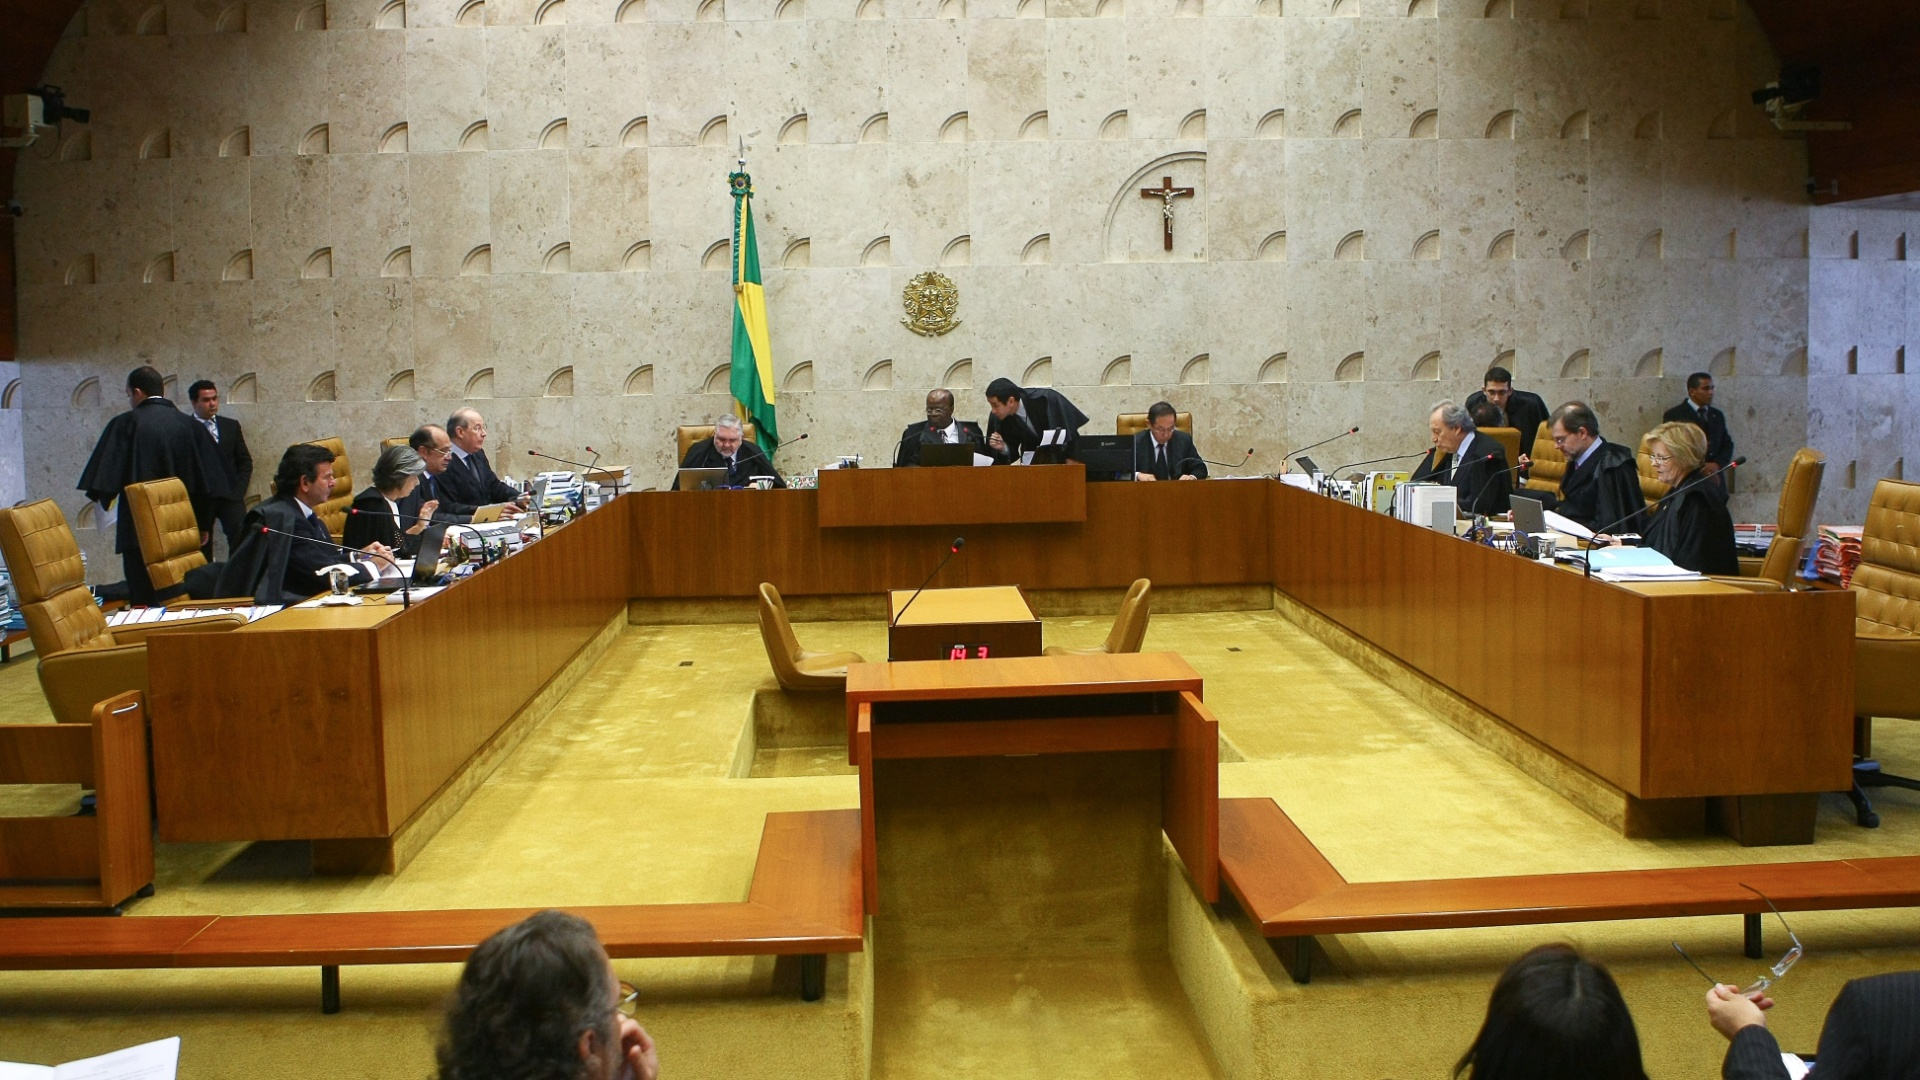 6.dez.2012 - Plenrio do STF durante sesso de julgamento do mensalo. Nesta quinta-feira (6), os ministros analisam a reviso do valor das multas aplicadas aos condenados no processo